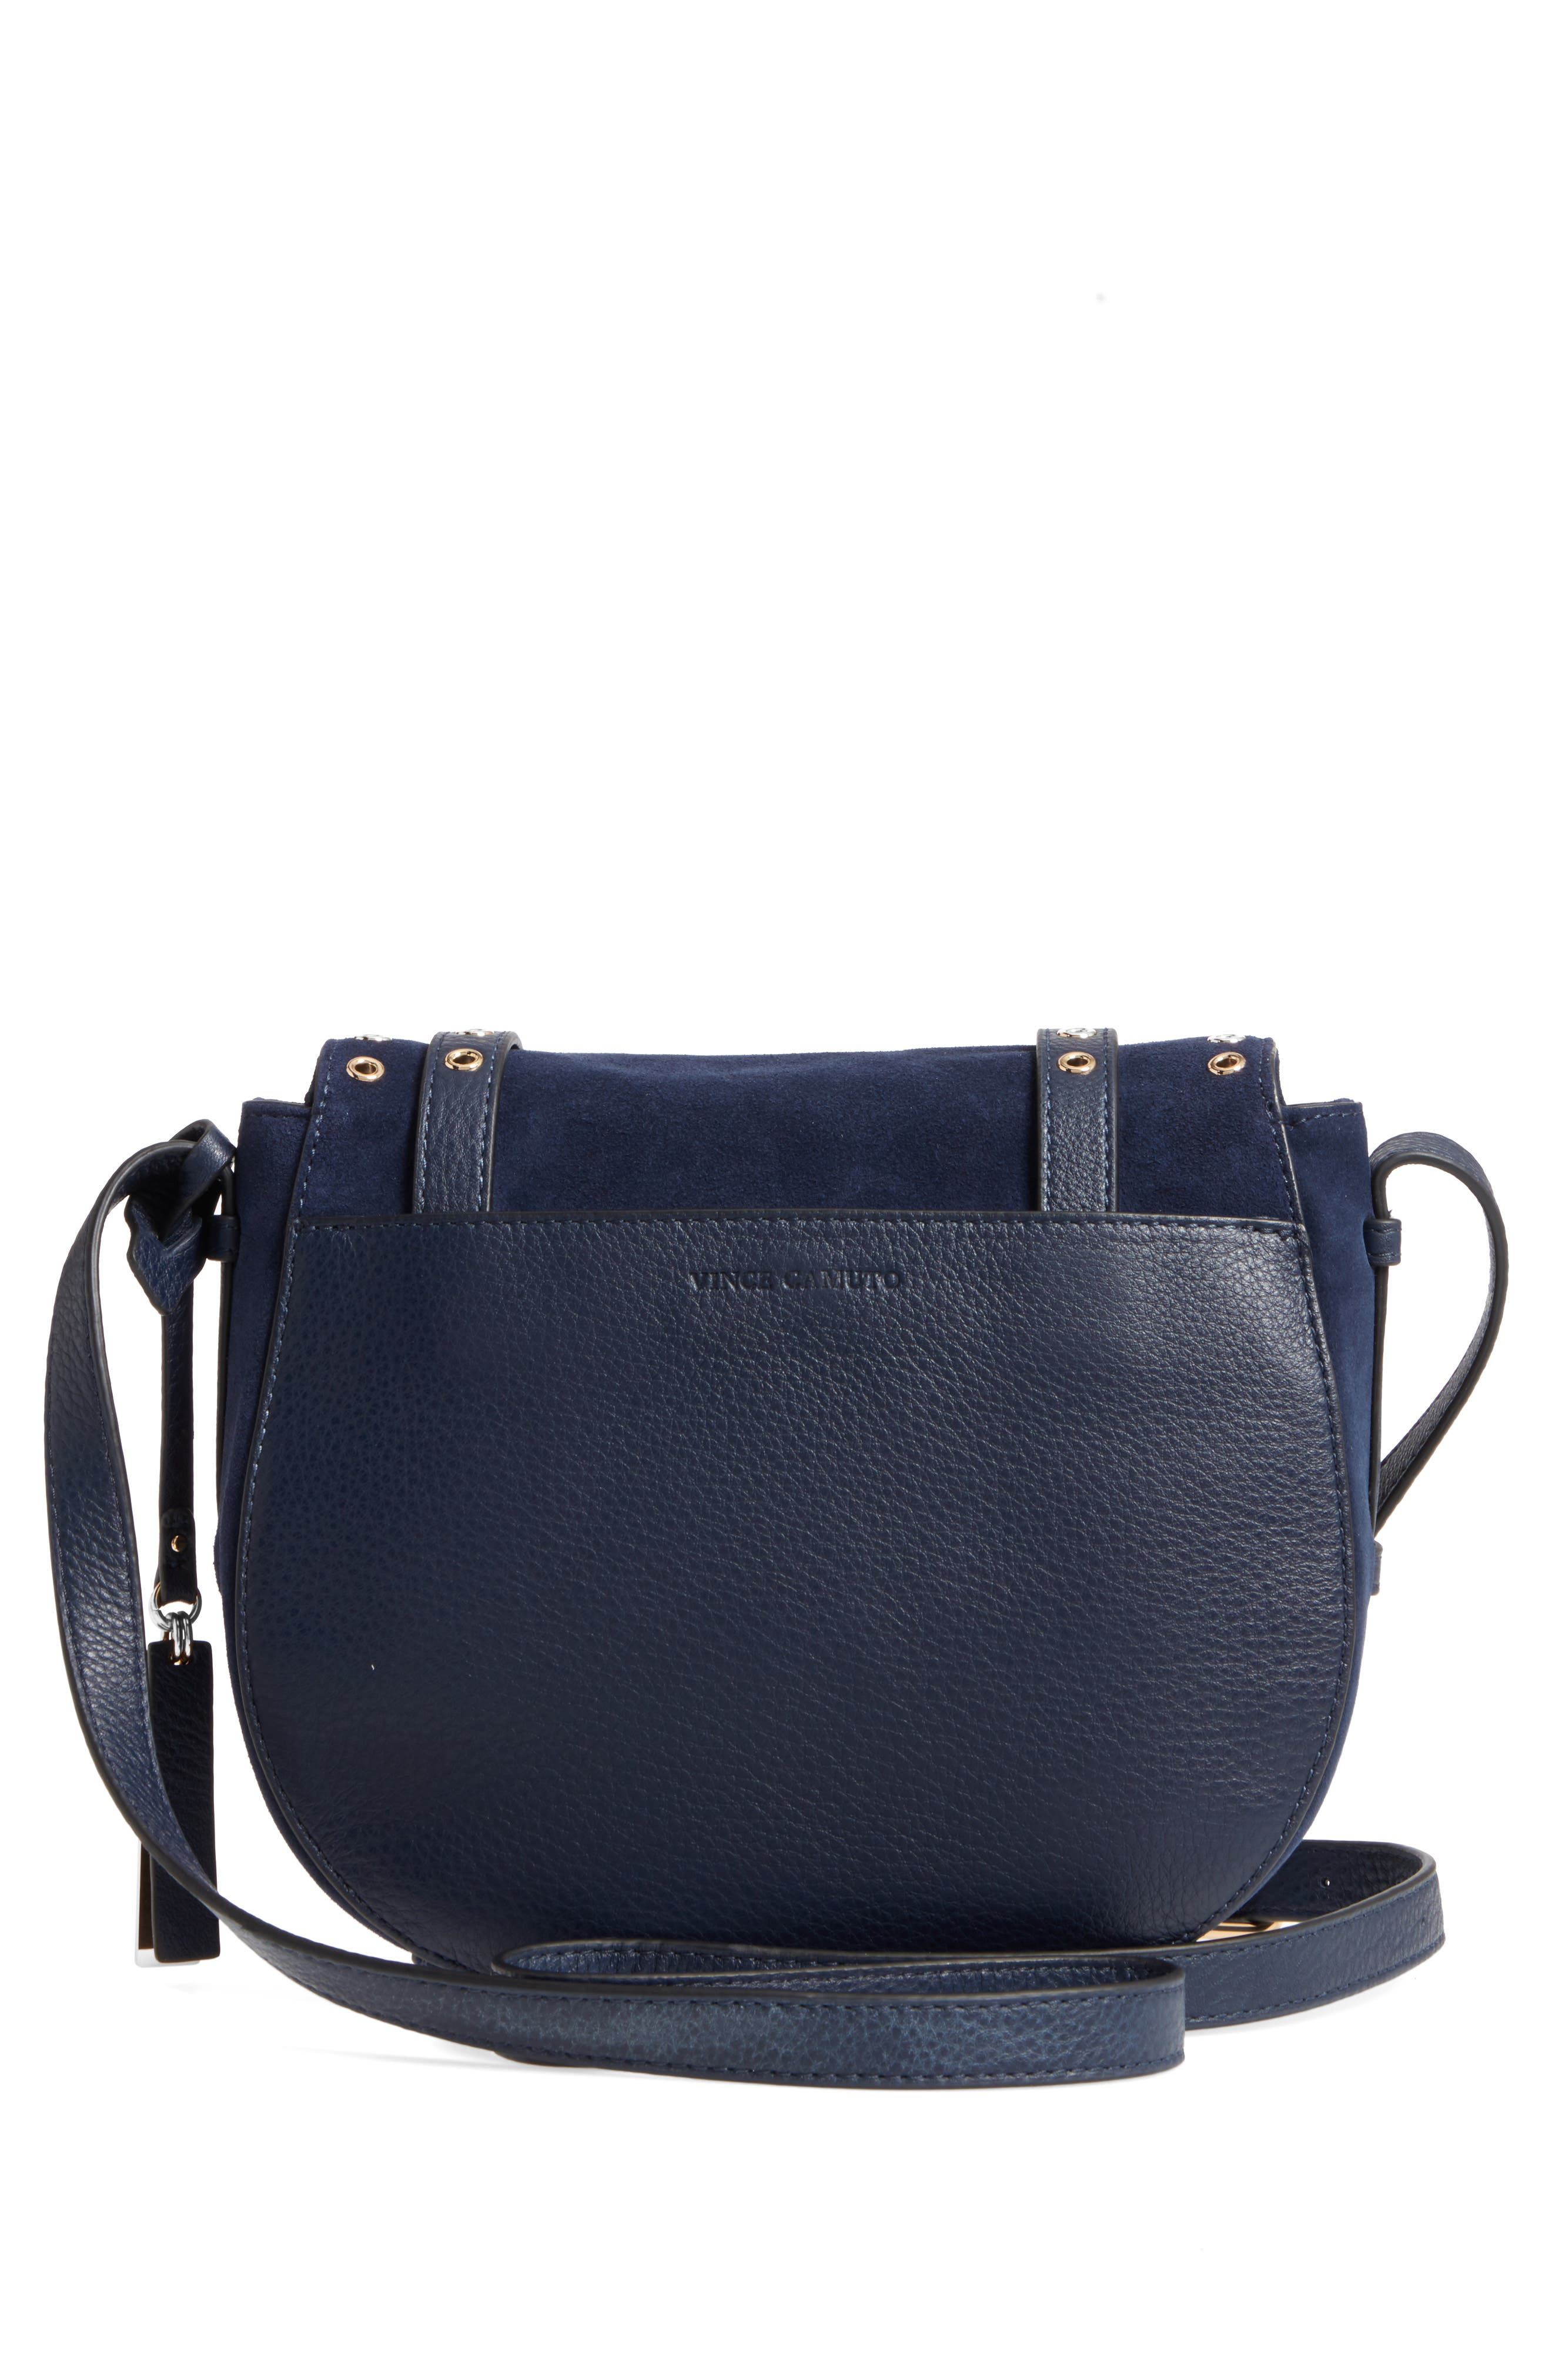 Areli Suede & Leather Crossbody Saddle Bag,                             Alternate thumbnail 3, color,                             Winter Navy